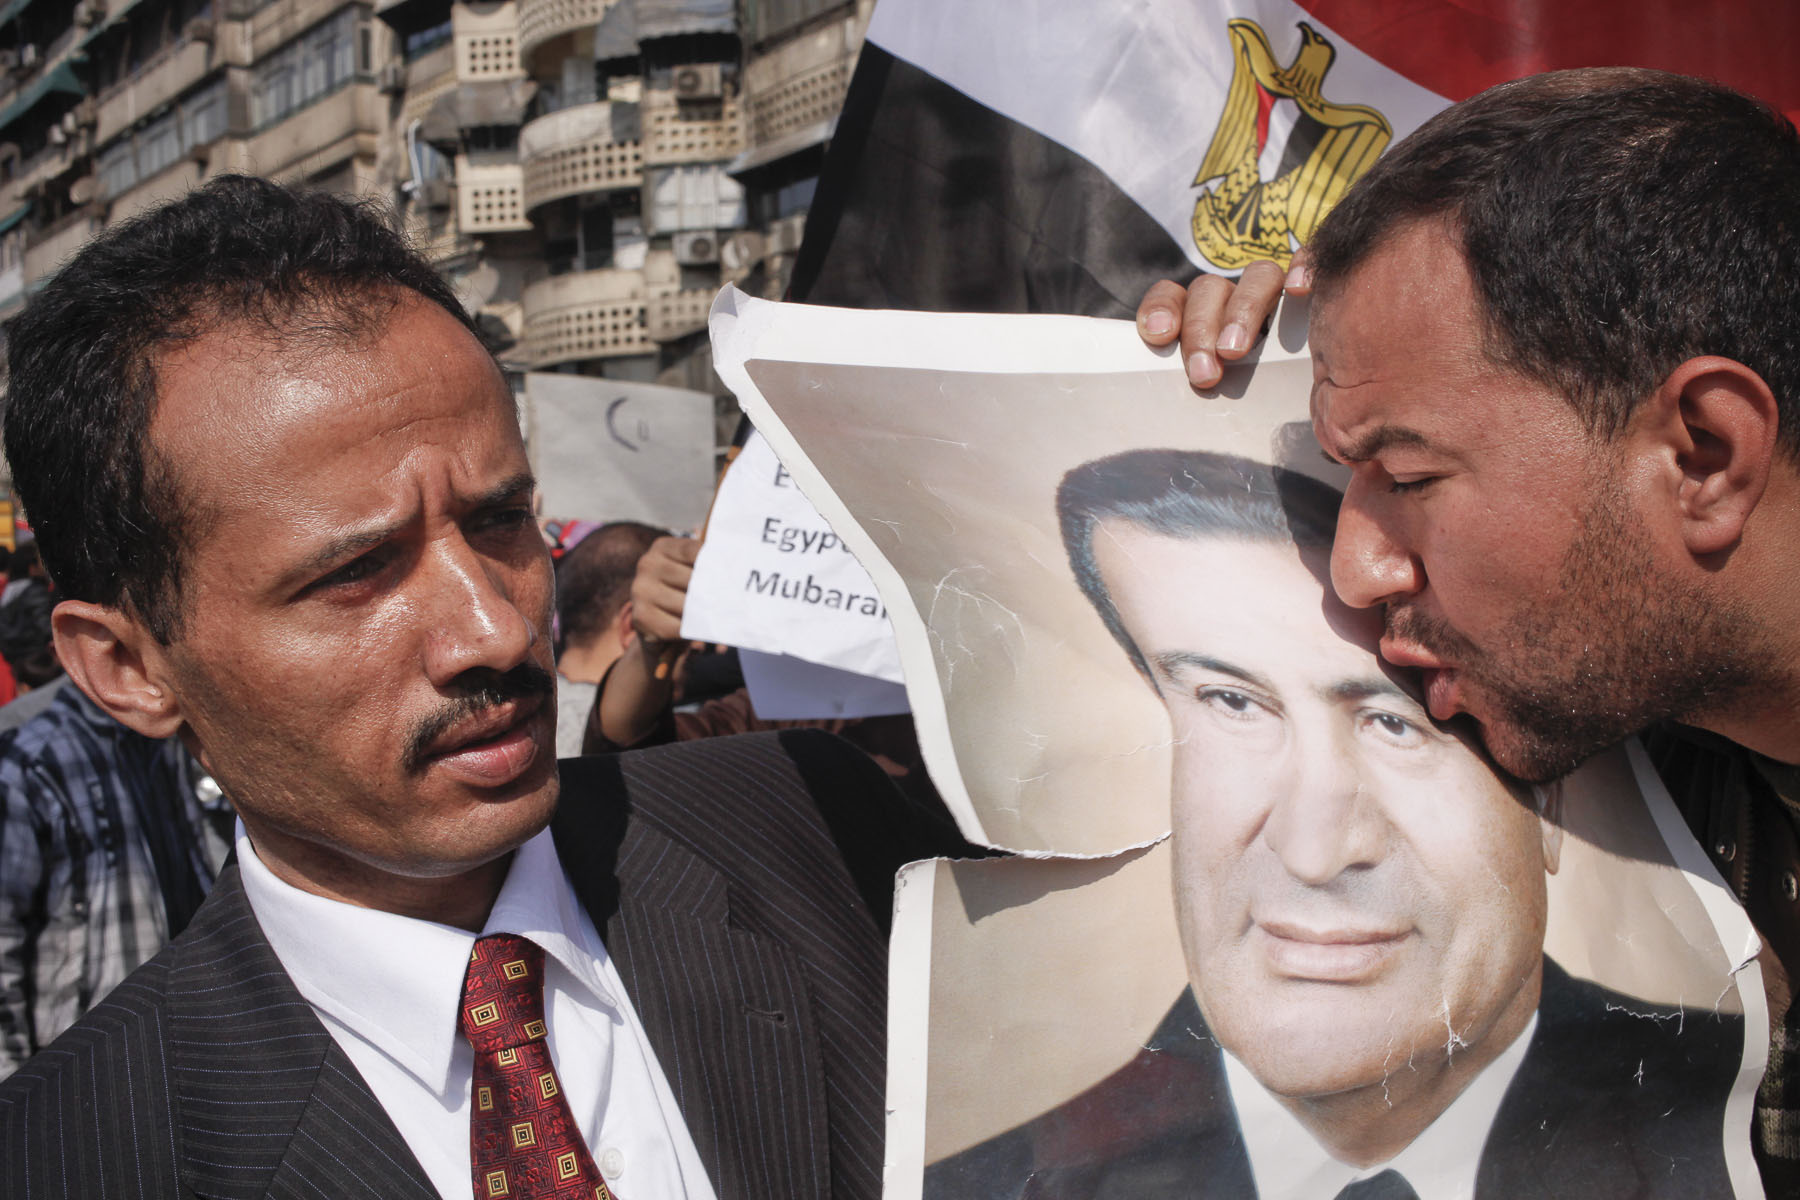 President Mubarak's supporters demonstrate near Tahrir Square on Wednesday February 2 2011